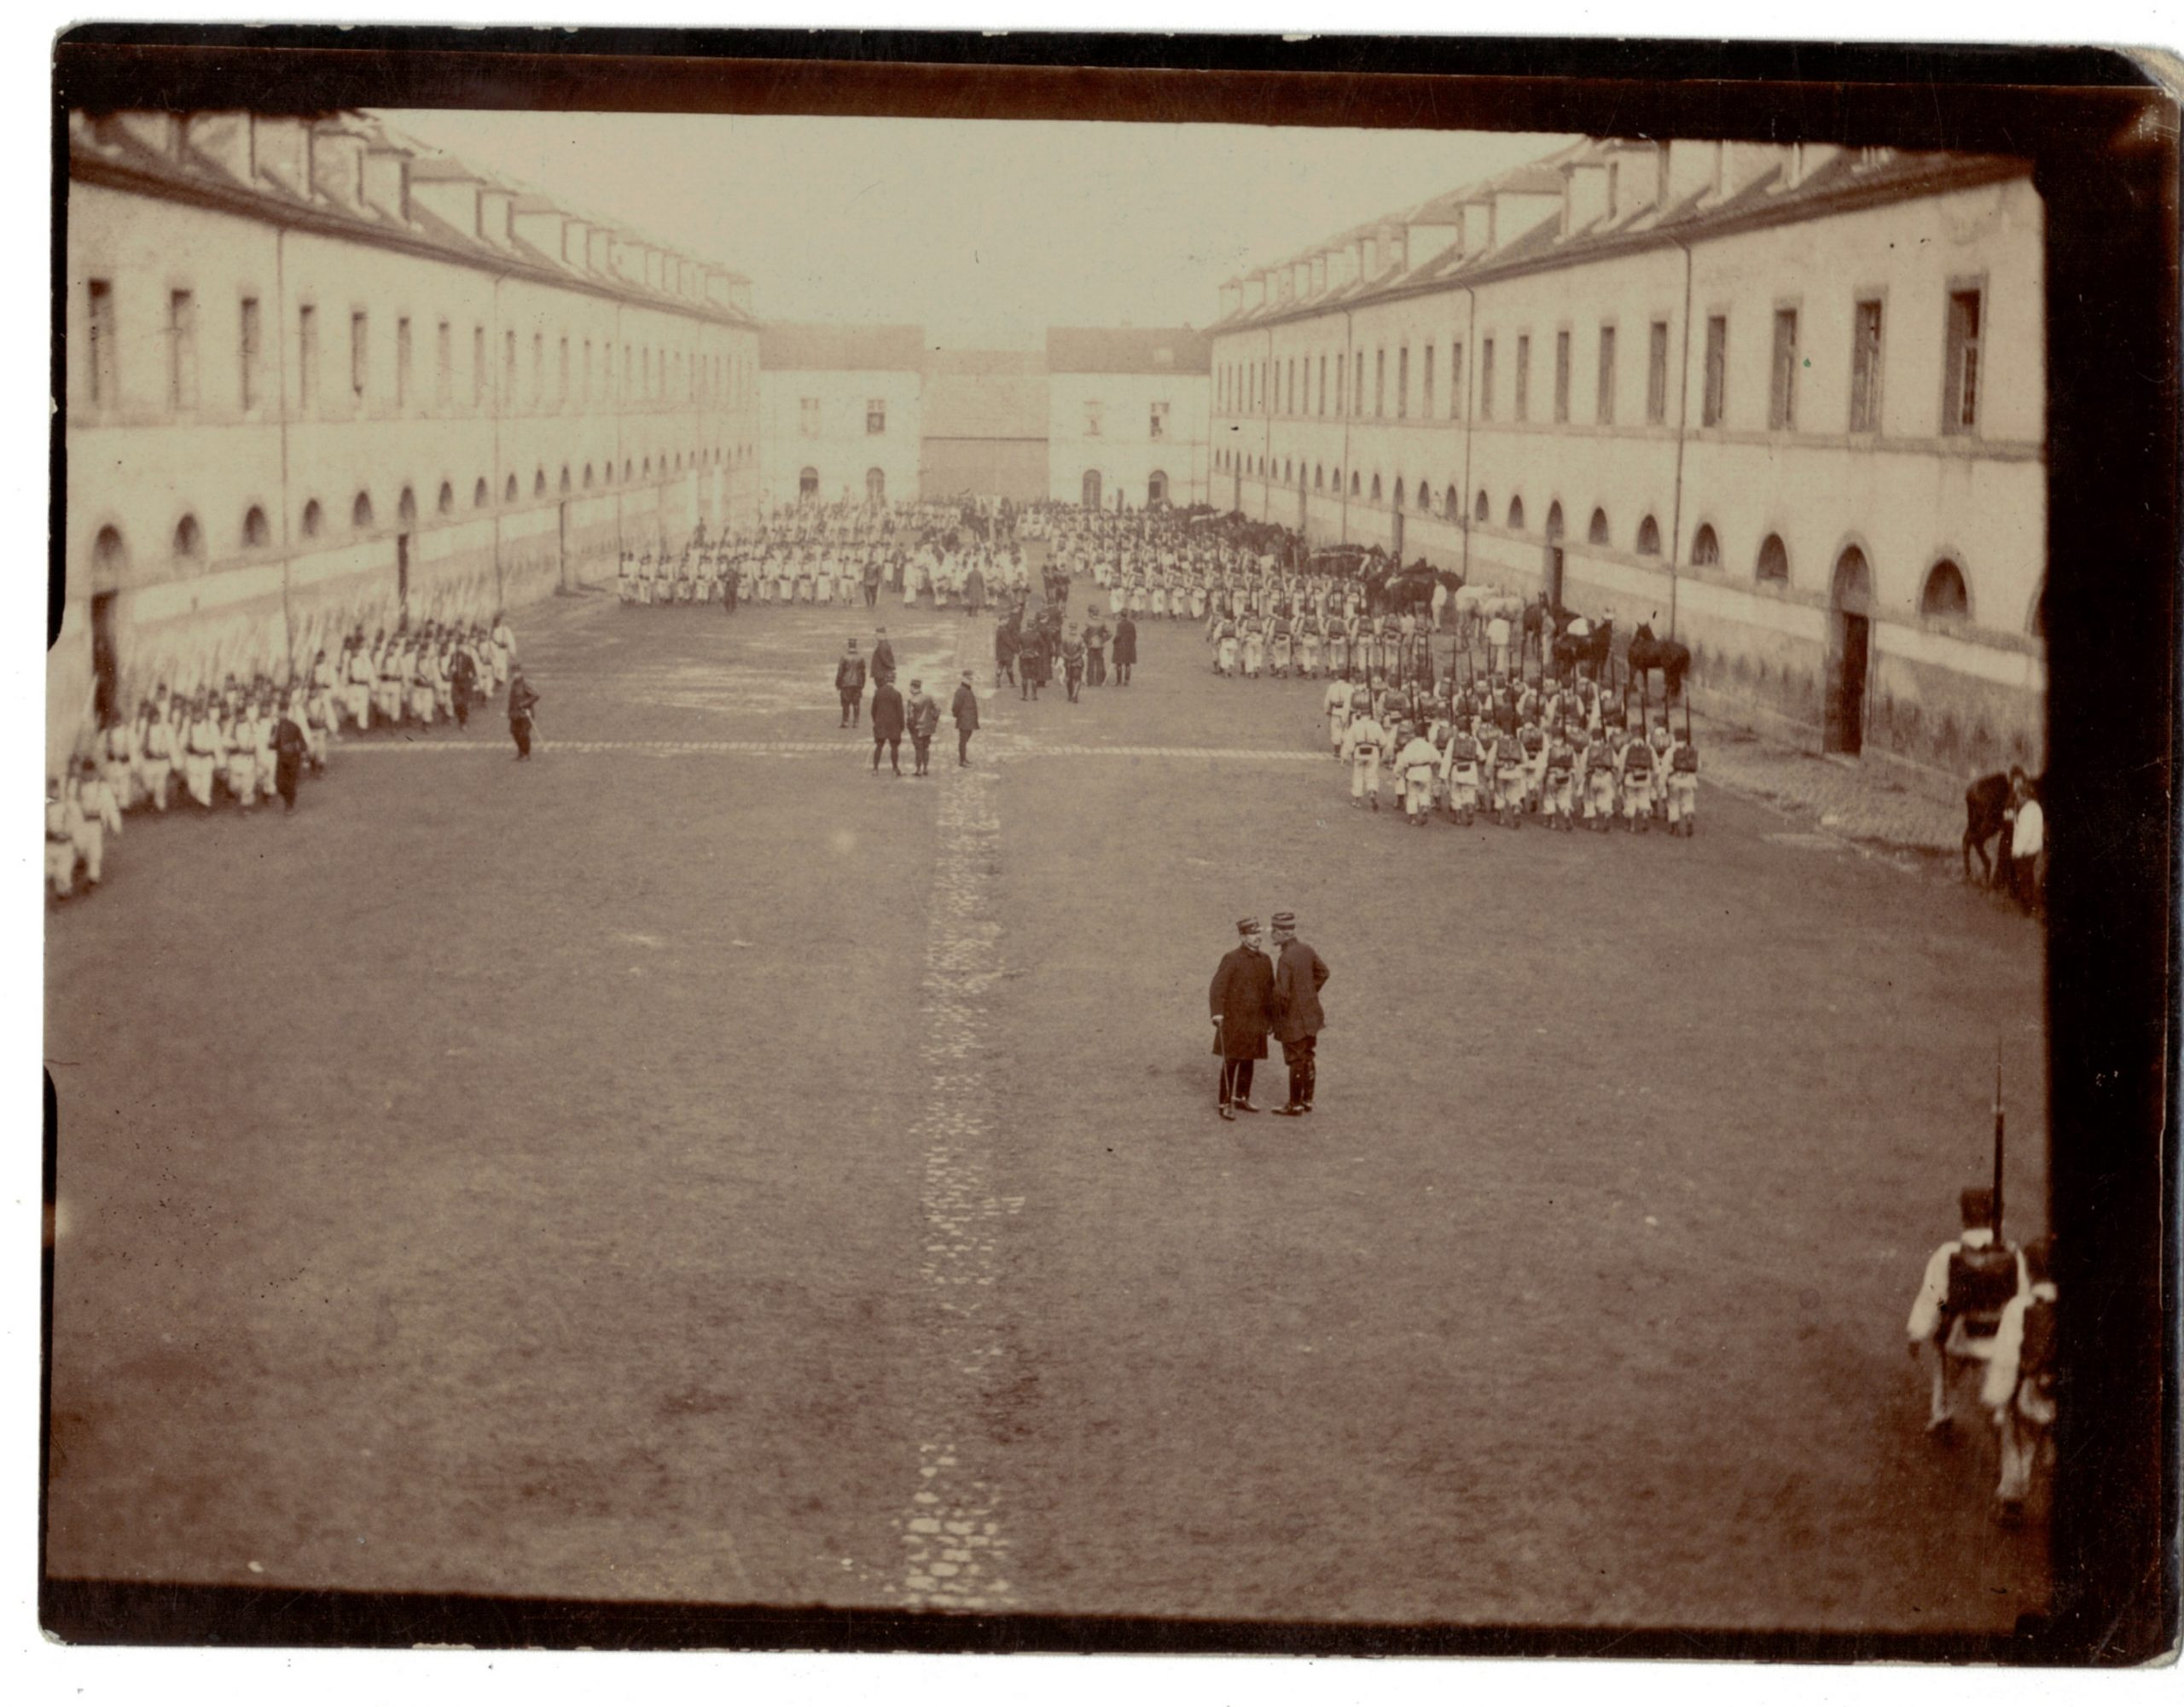 Photo papier originale caserne exercice - Armée Française - Uniforme - Officiers - Paquetage - France - 1914/1918